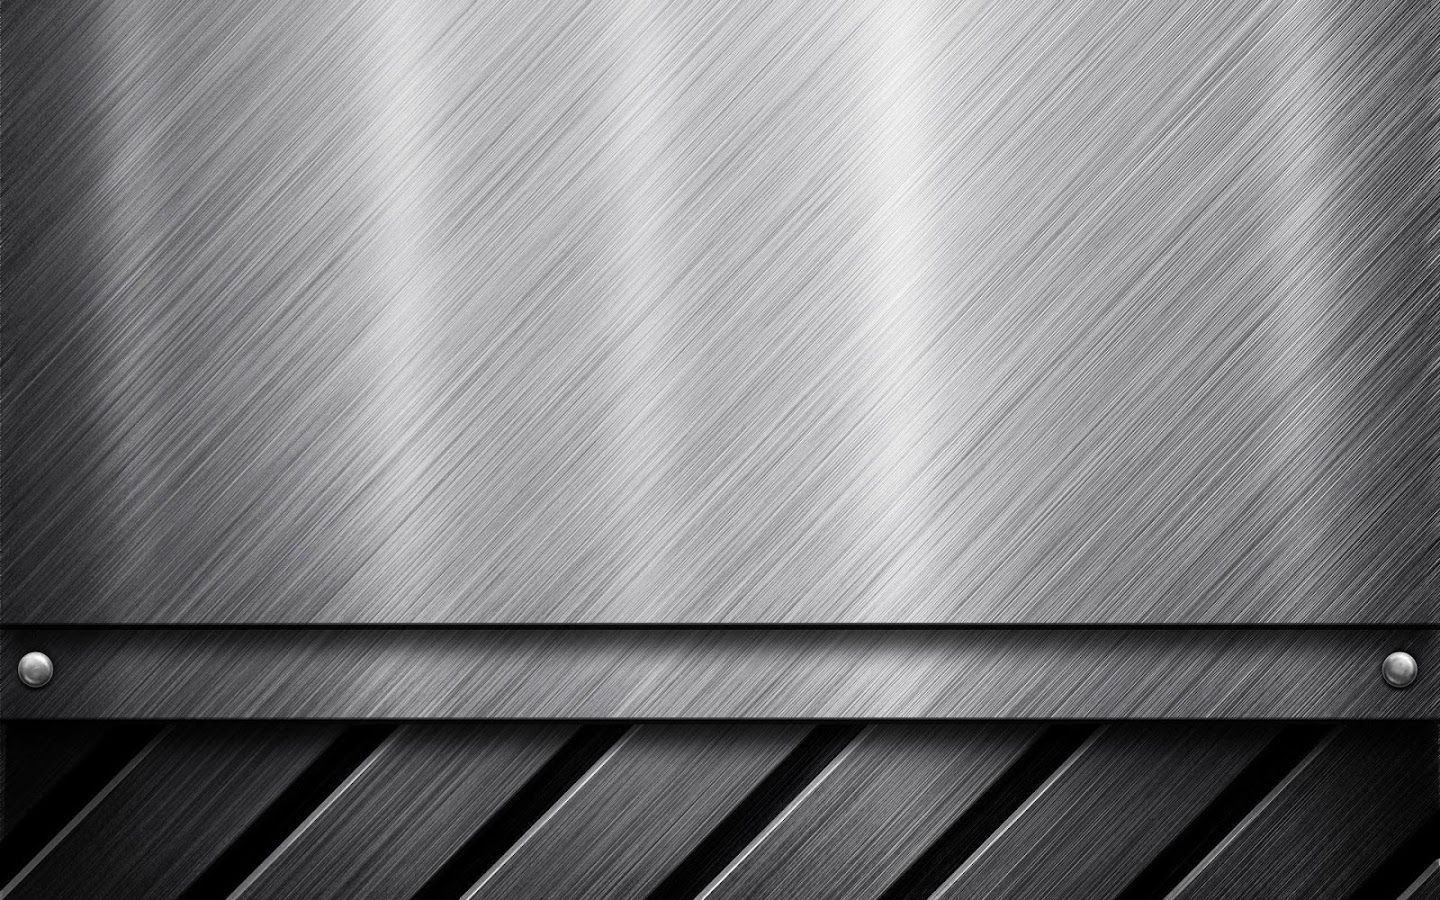 Download Silver And Black Background Hd Wallpaper For Widescreen Wallpaperr On Hdwallpaper9 Com I Background Hd Wallpaper Metal Background Metallic Wallpaper